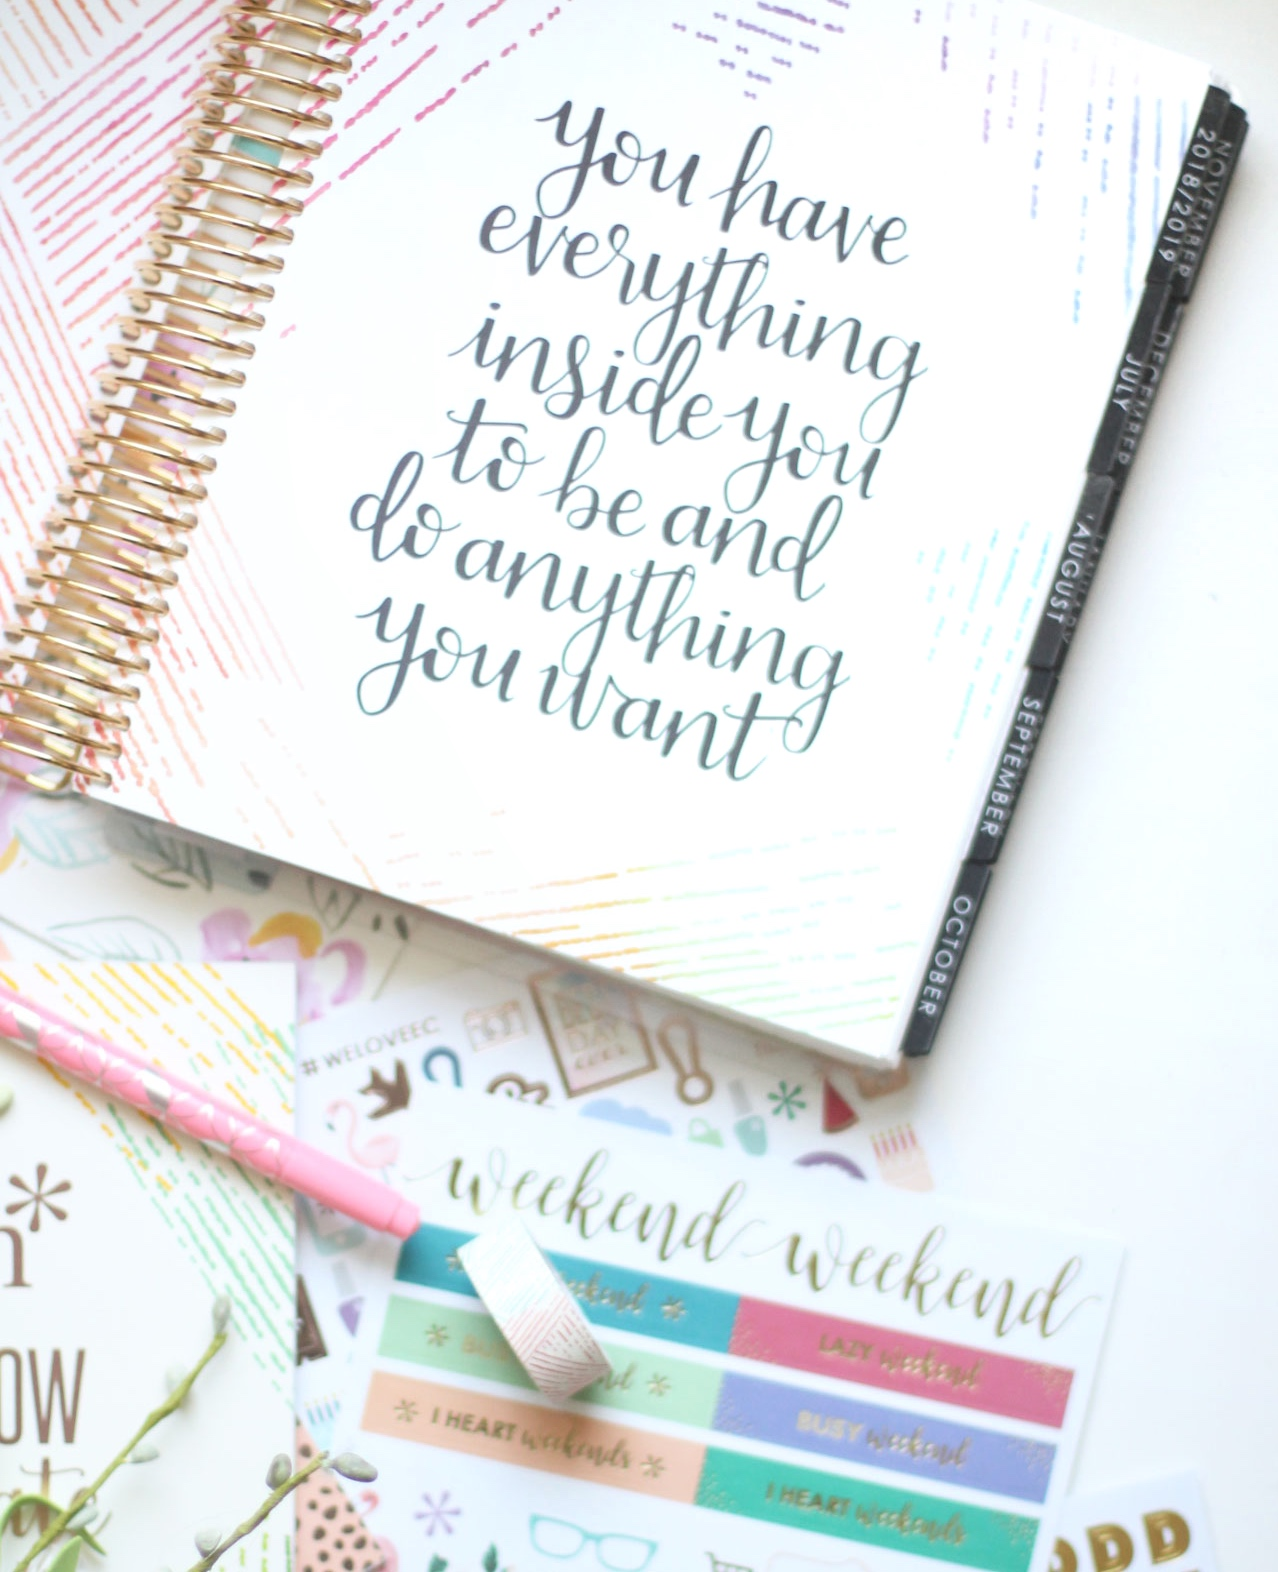 The 2018-2019 Erin Condren LifePlanner featured by popular North Carolina Lifestyle blogger, Glitter, Inc.